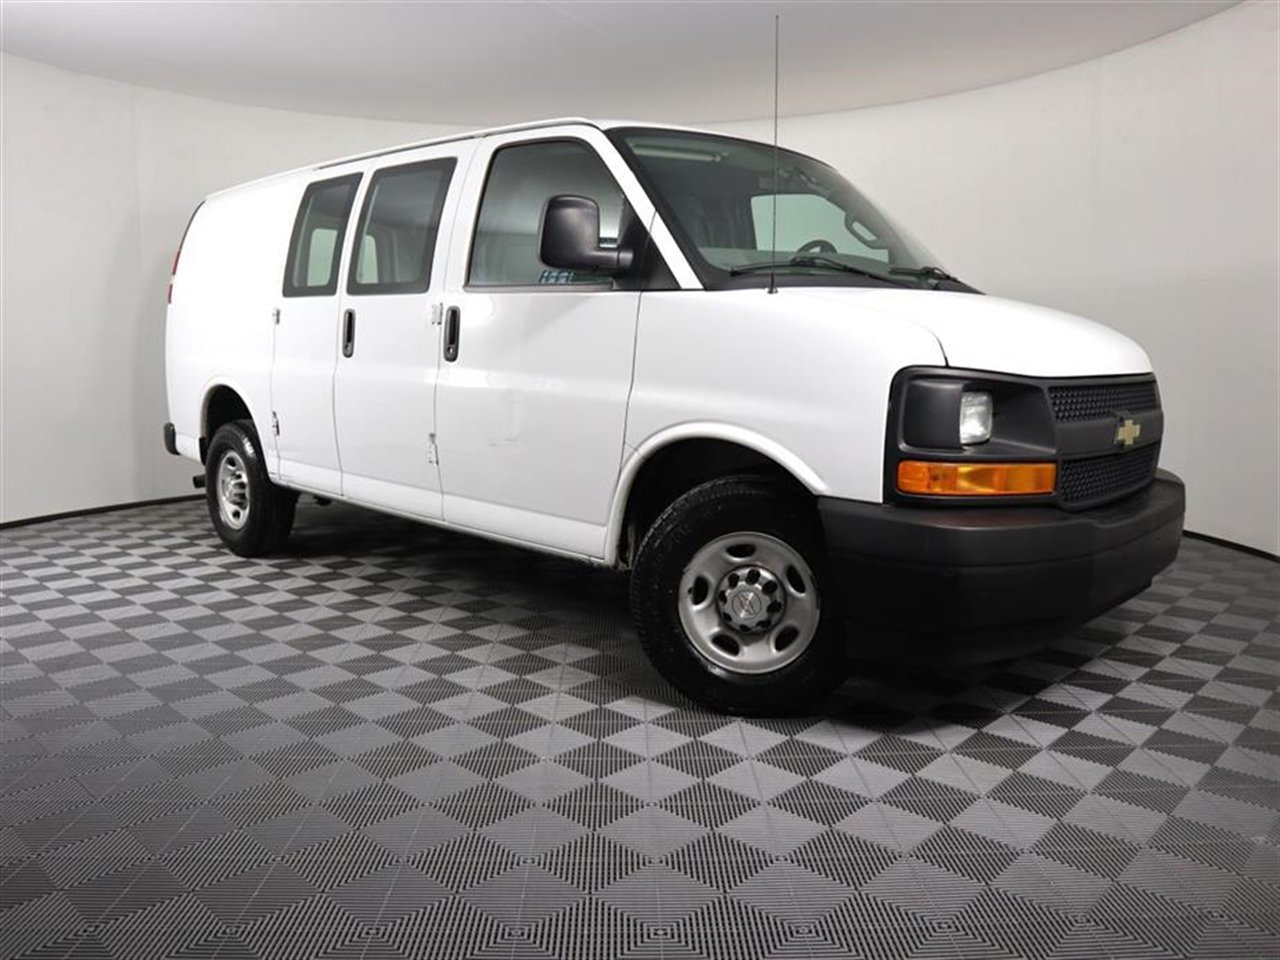 e7b9676470 Pre-Owned 2017 Chevrolet Express Cargo Van Full-size Cargo Van in ...